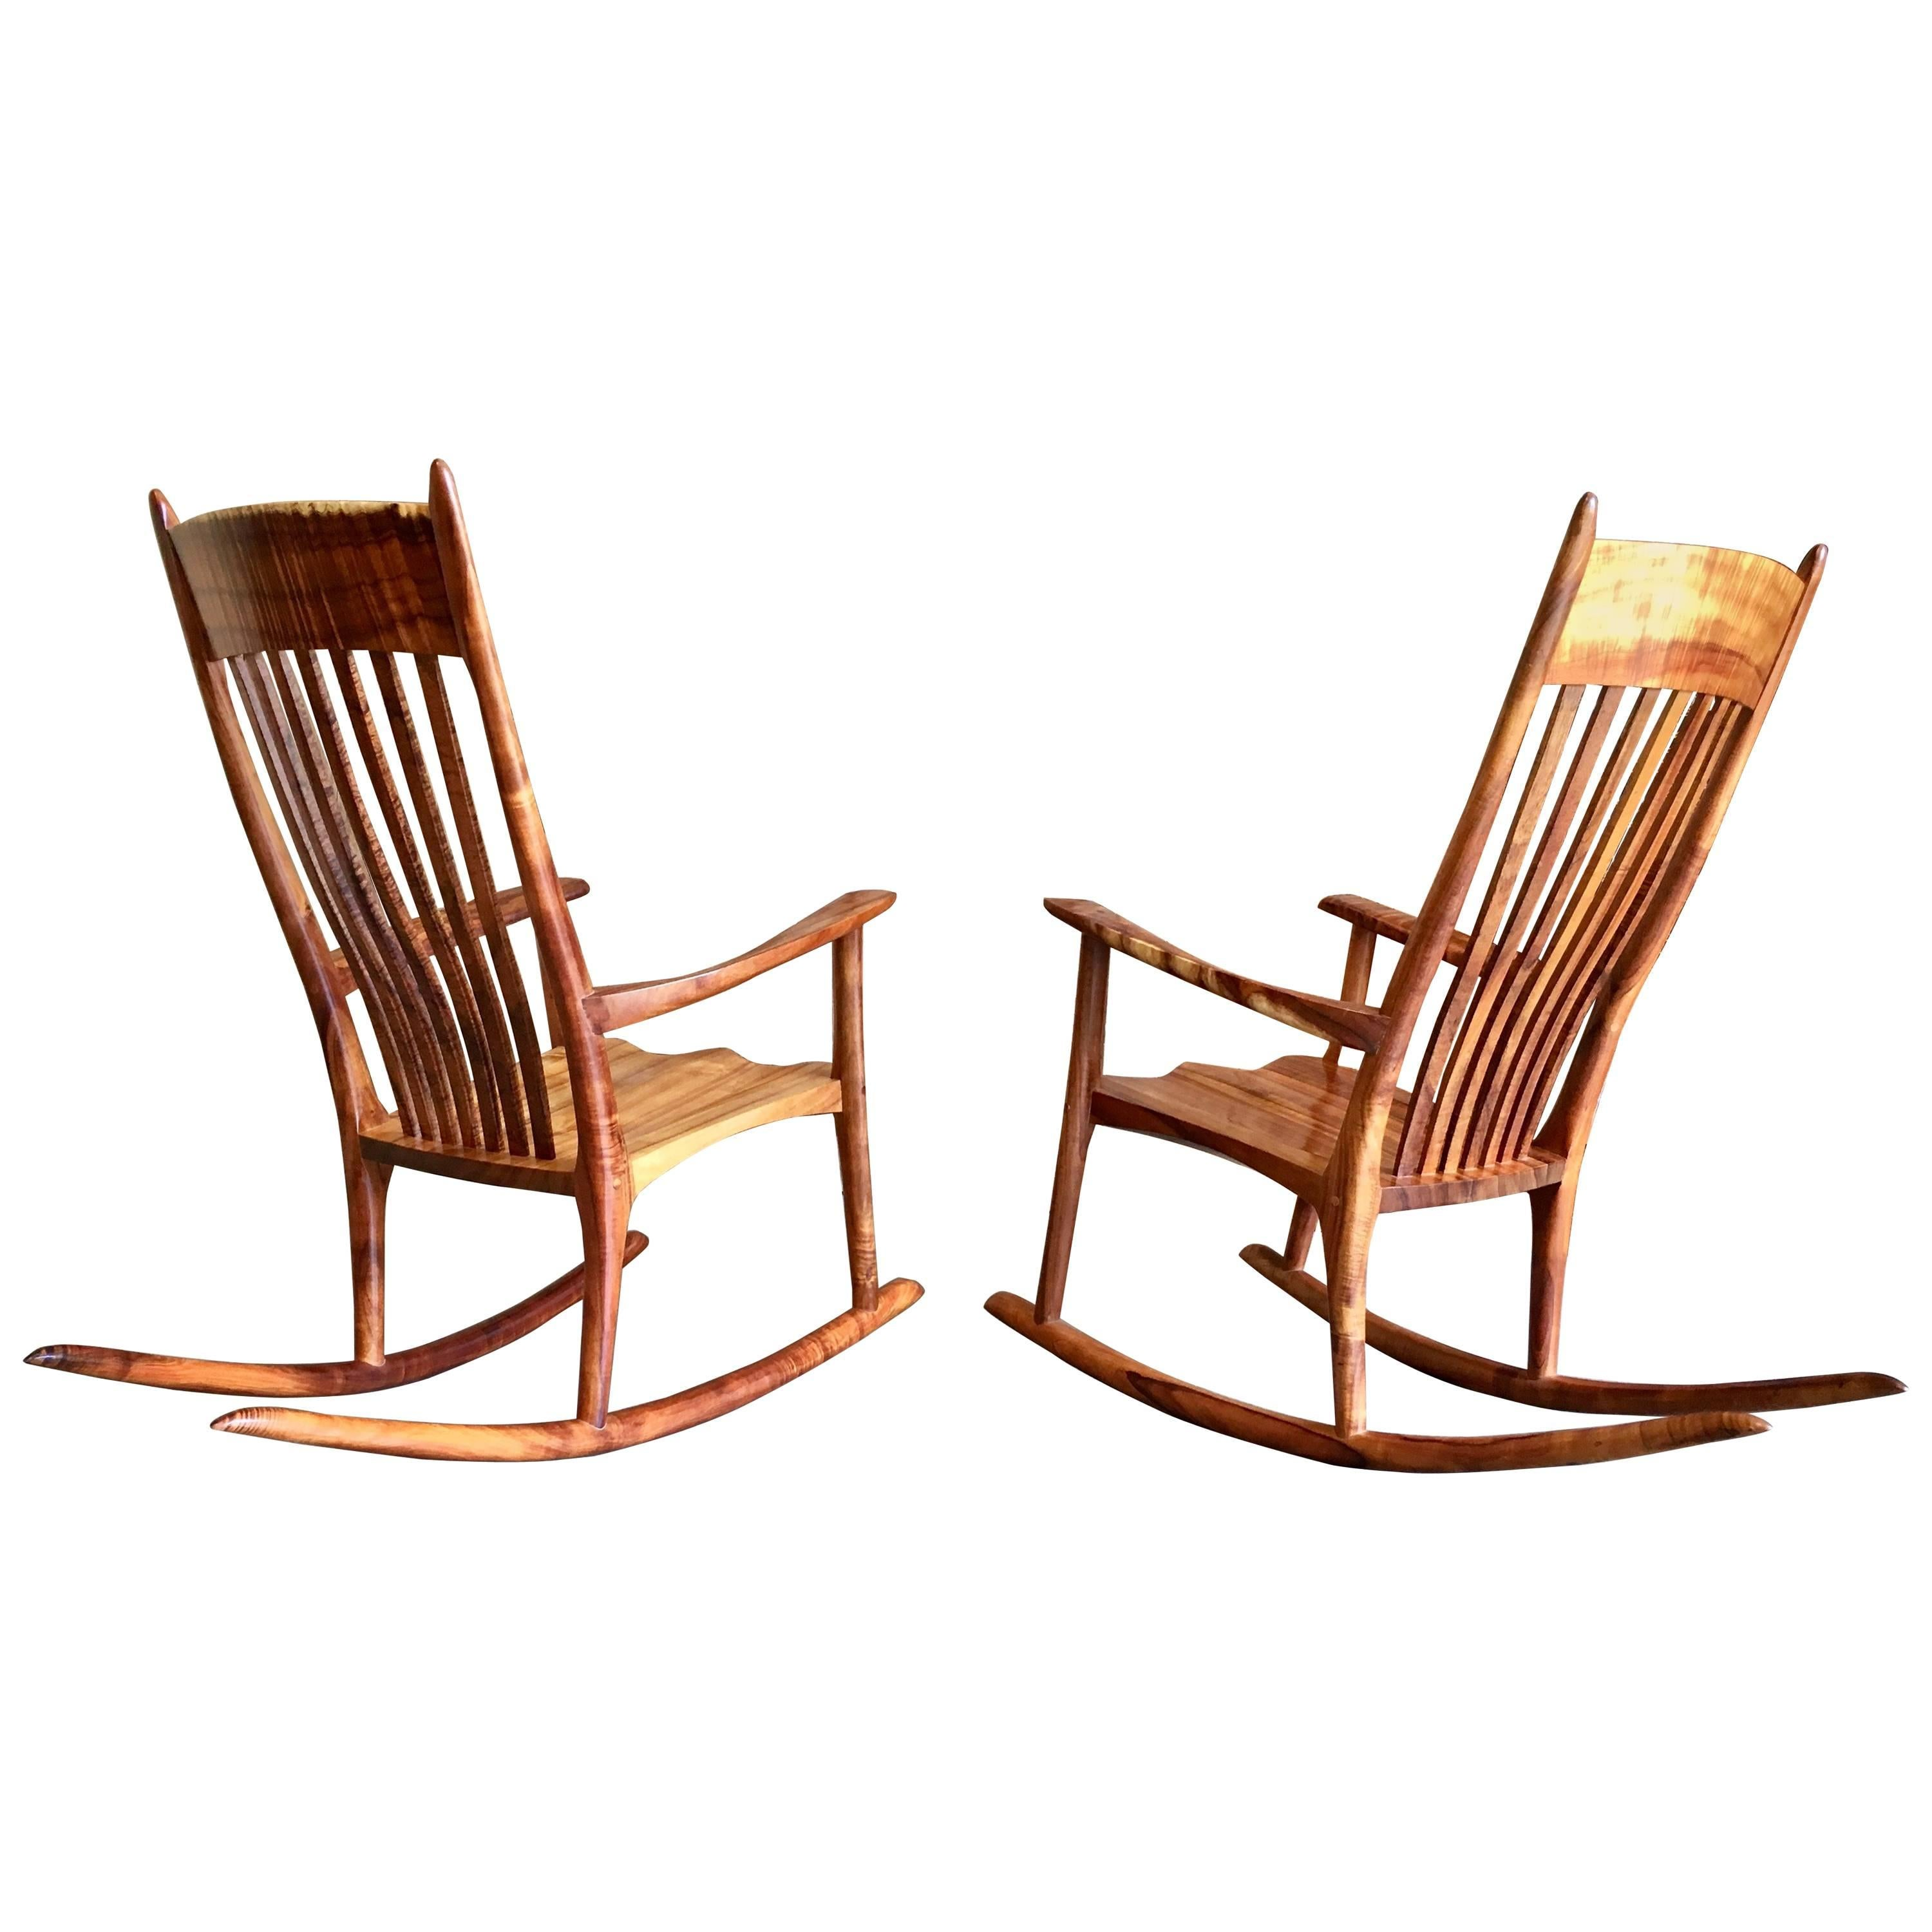 Wood Rocking Chair Studio Crafted Koa Wood Rocking Chairs By Stan Gollaher